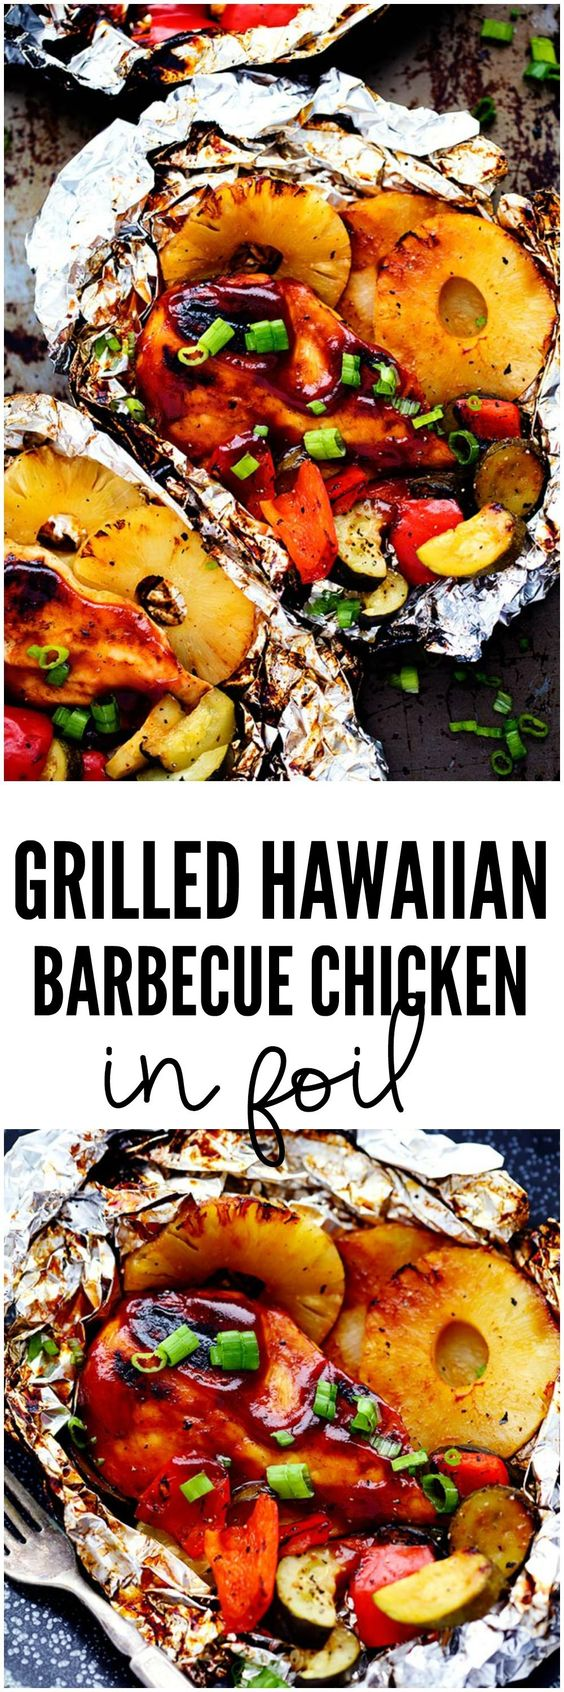 Grilled Hawaiian Barbecue Chicken in Foil has the most amazing sweet and tangy pineapple barbecue sauce! It grills to perfection with…